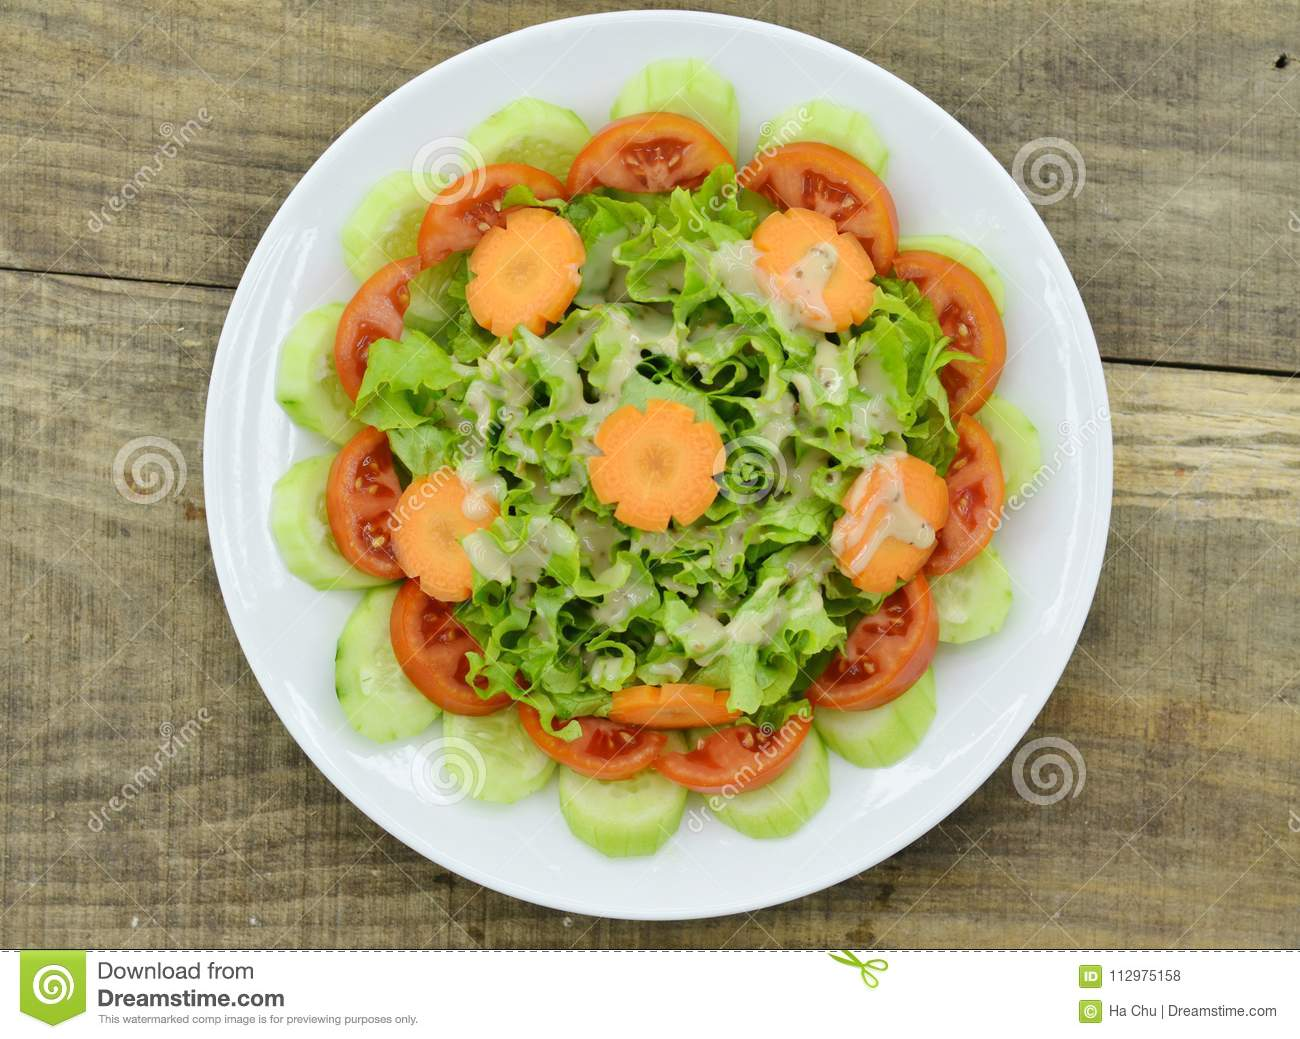 Plate with delicious carrot salad on wooden background